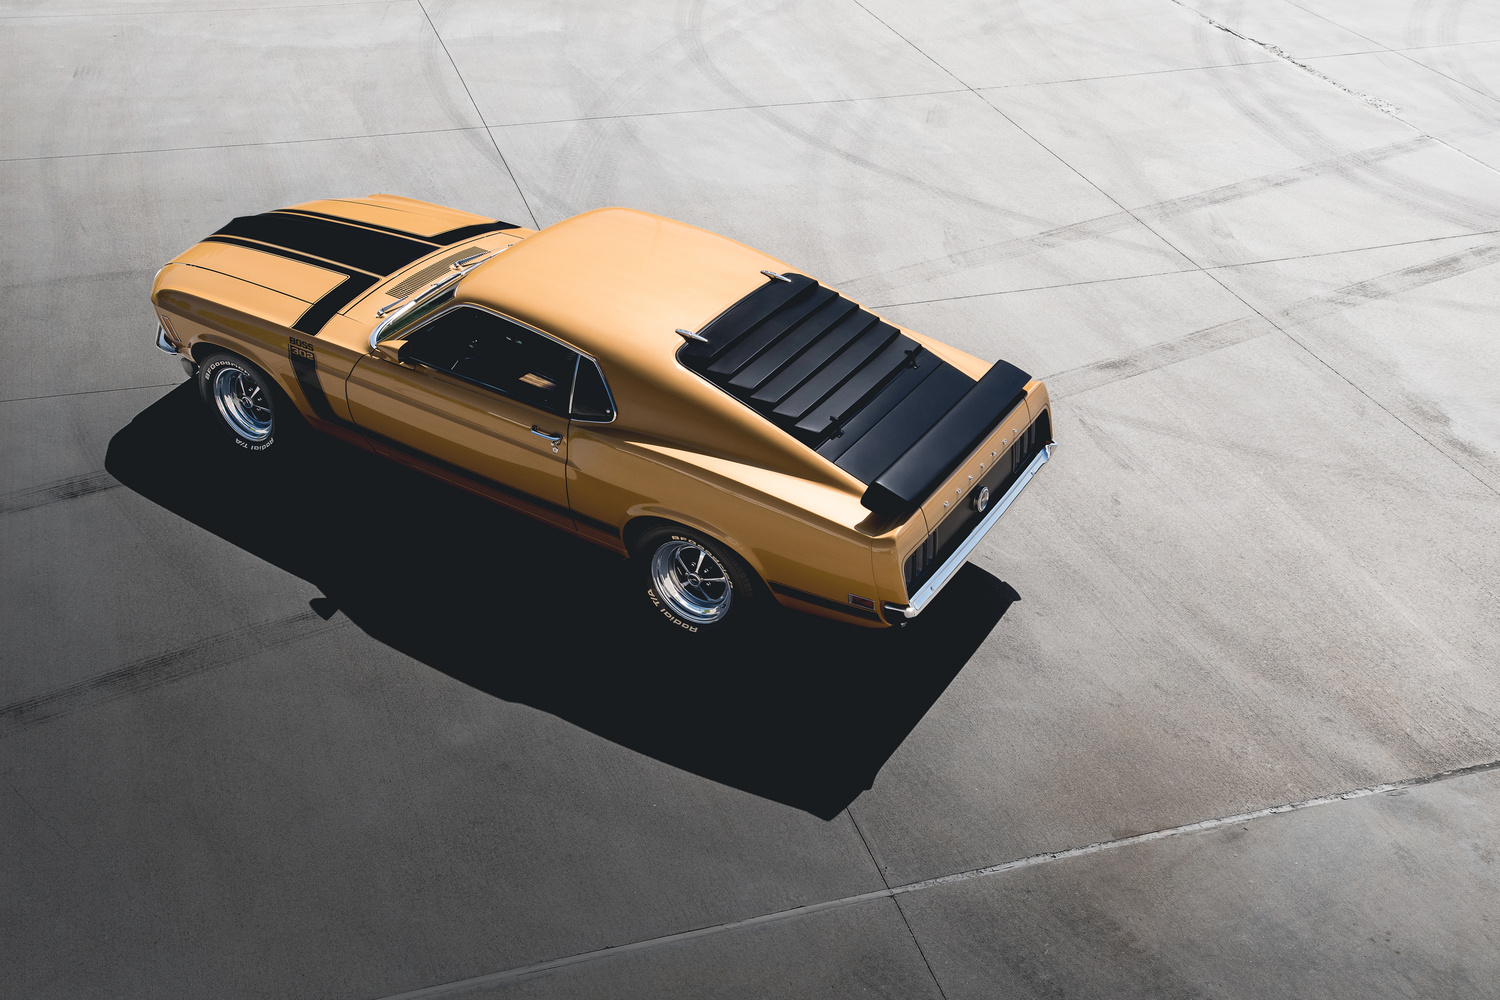 Ford Mustang Boss 302 by Dominic Mann